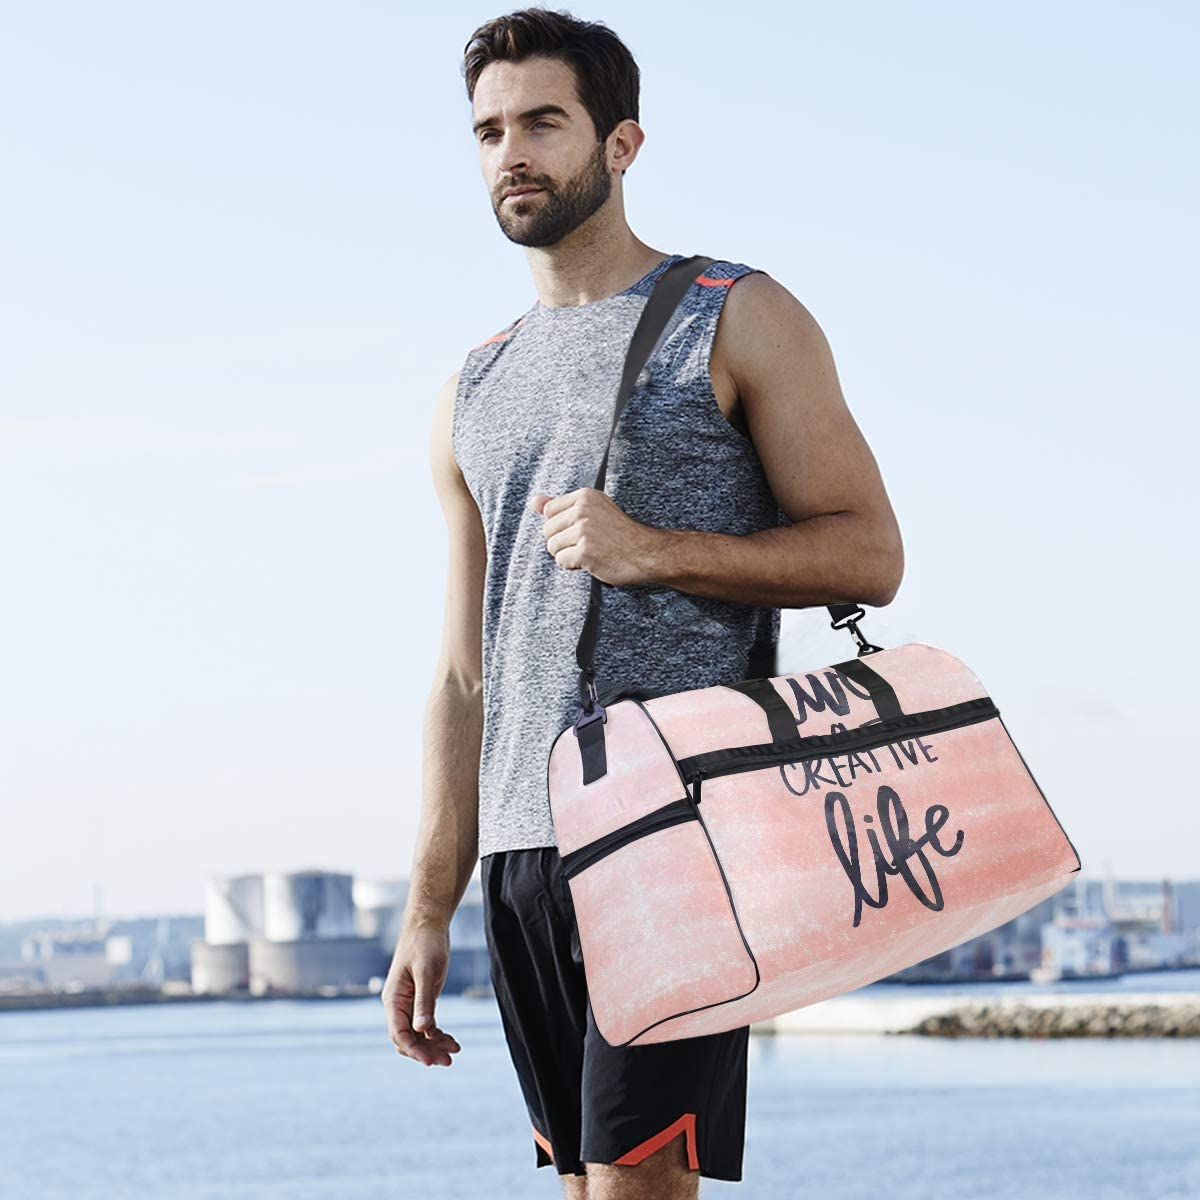 ALAZA Inspirational Life Quote Sports Gym Duffel Bag Travel Luggage Handbag Shoulder Bag with Shoes Compartment for Men Women